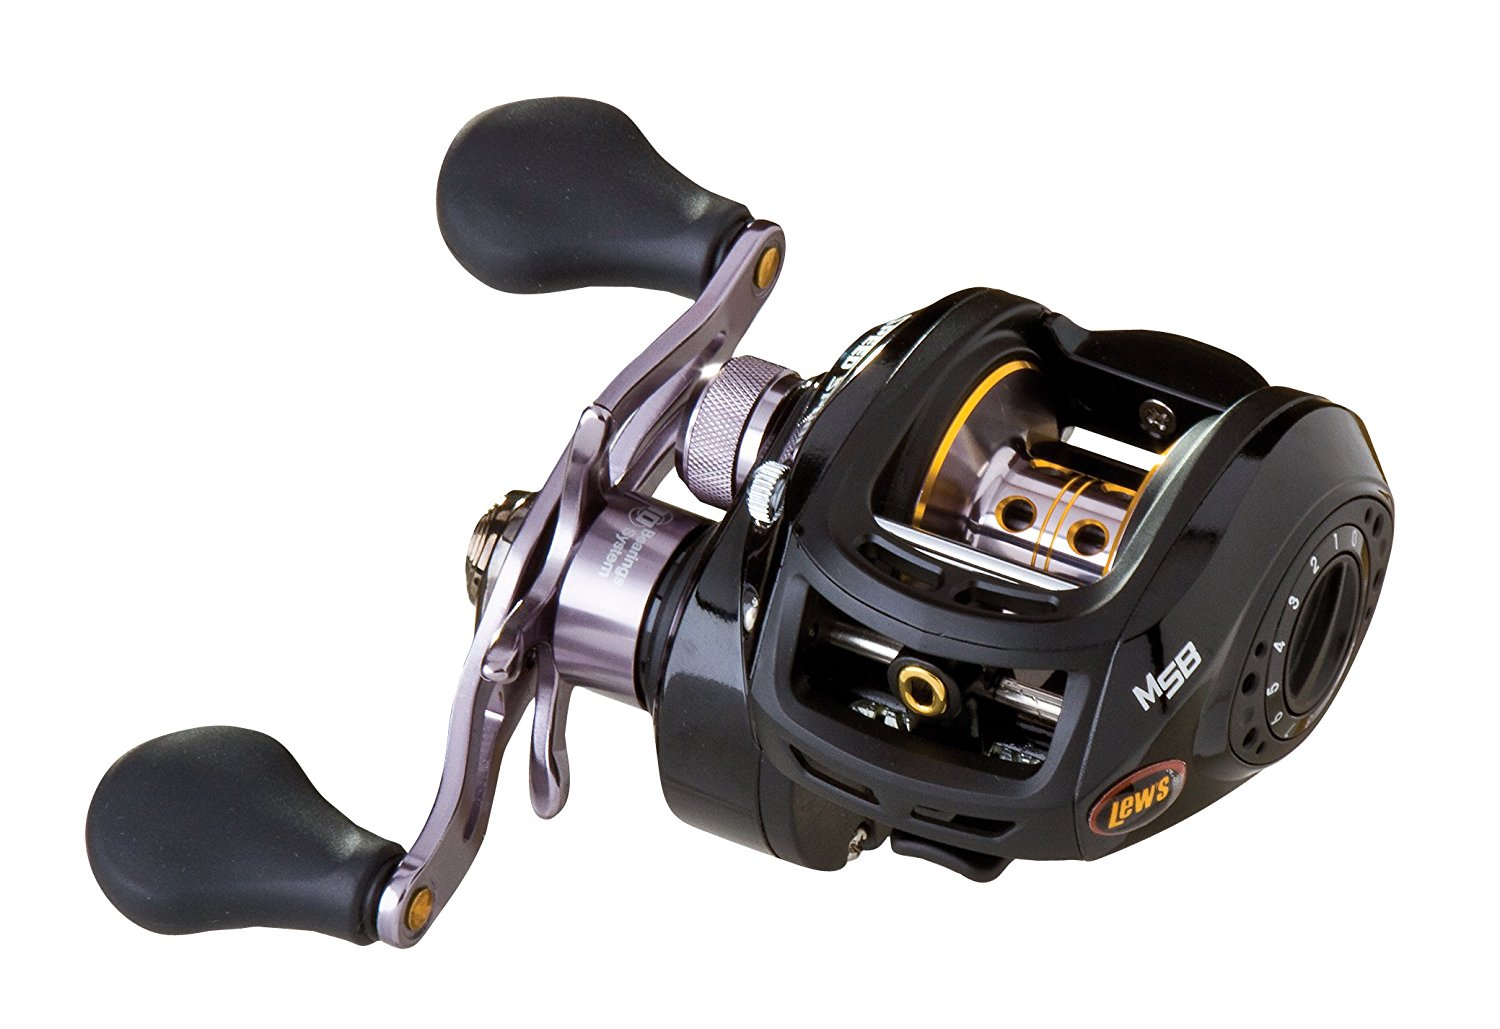 Lew 39 s tournament speed spool baitcast reel ts1h new ebay for Baitcasting fishing reel